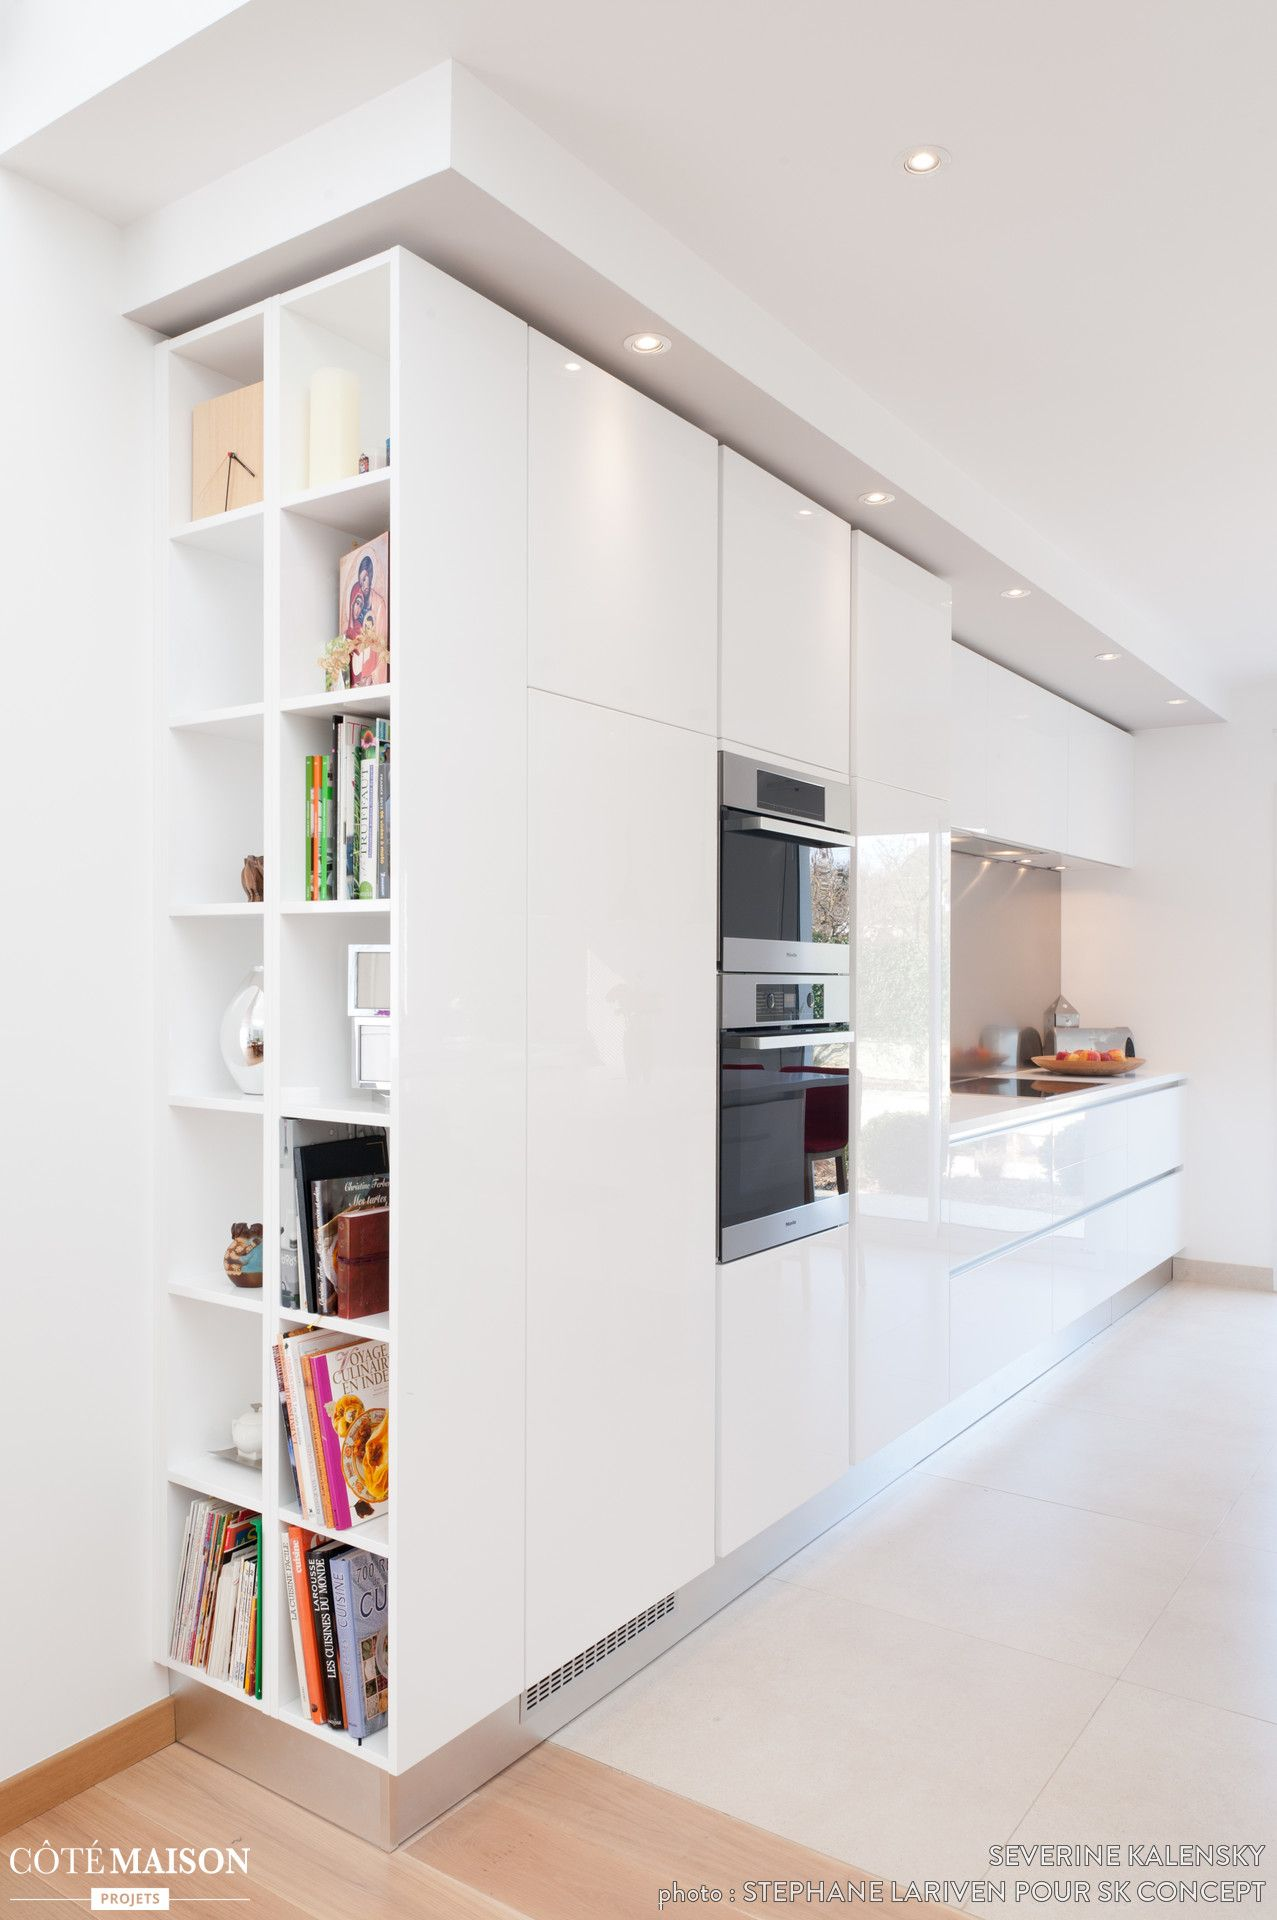 Kitchen Bookcase Cuisine Blanche Design Armony Daumesnil Finition Extraame Blanc